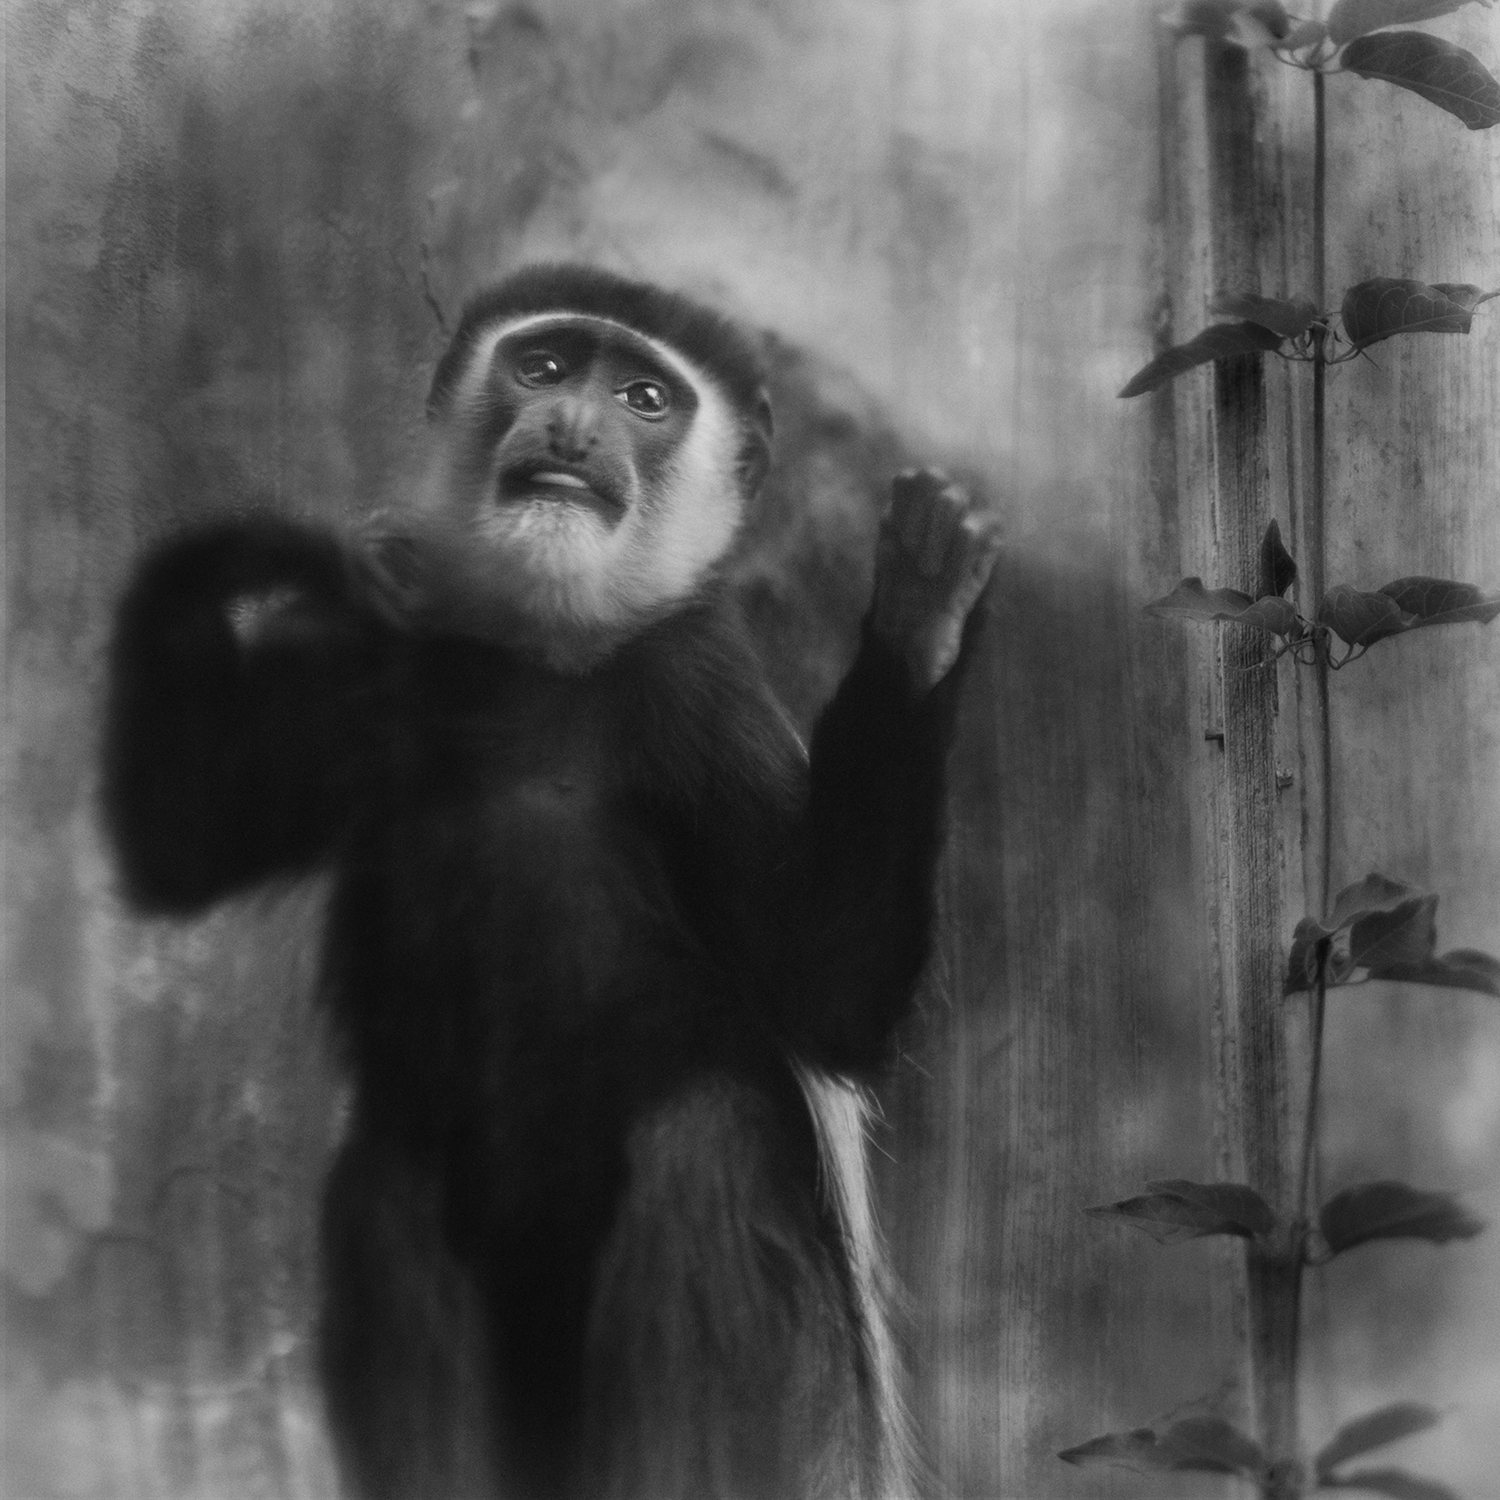 Knocking from the Inside, Colobus Monkey © Anne Berry